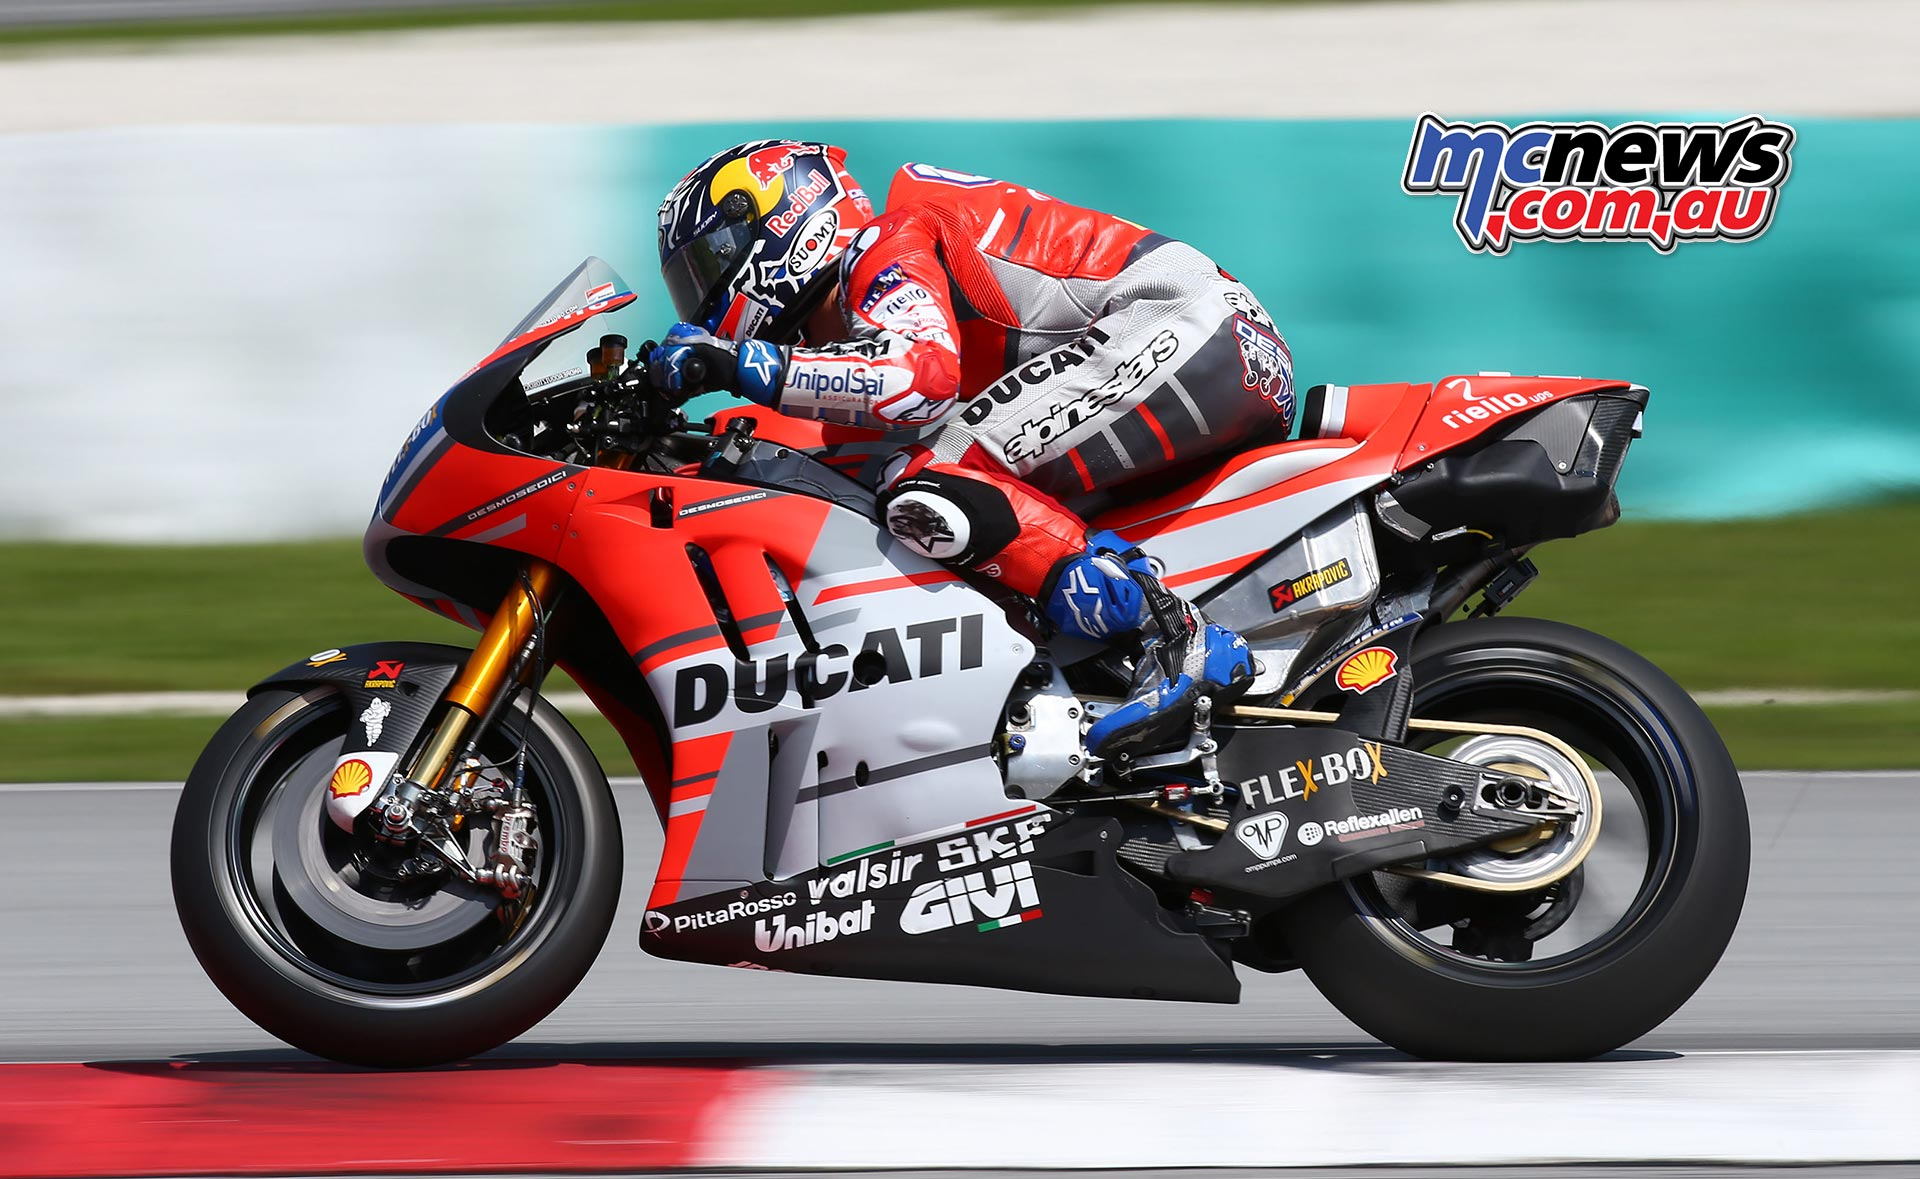 Just how fast do MotoGP bikes actually accelerate